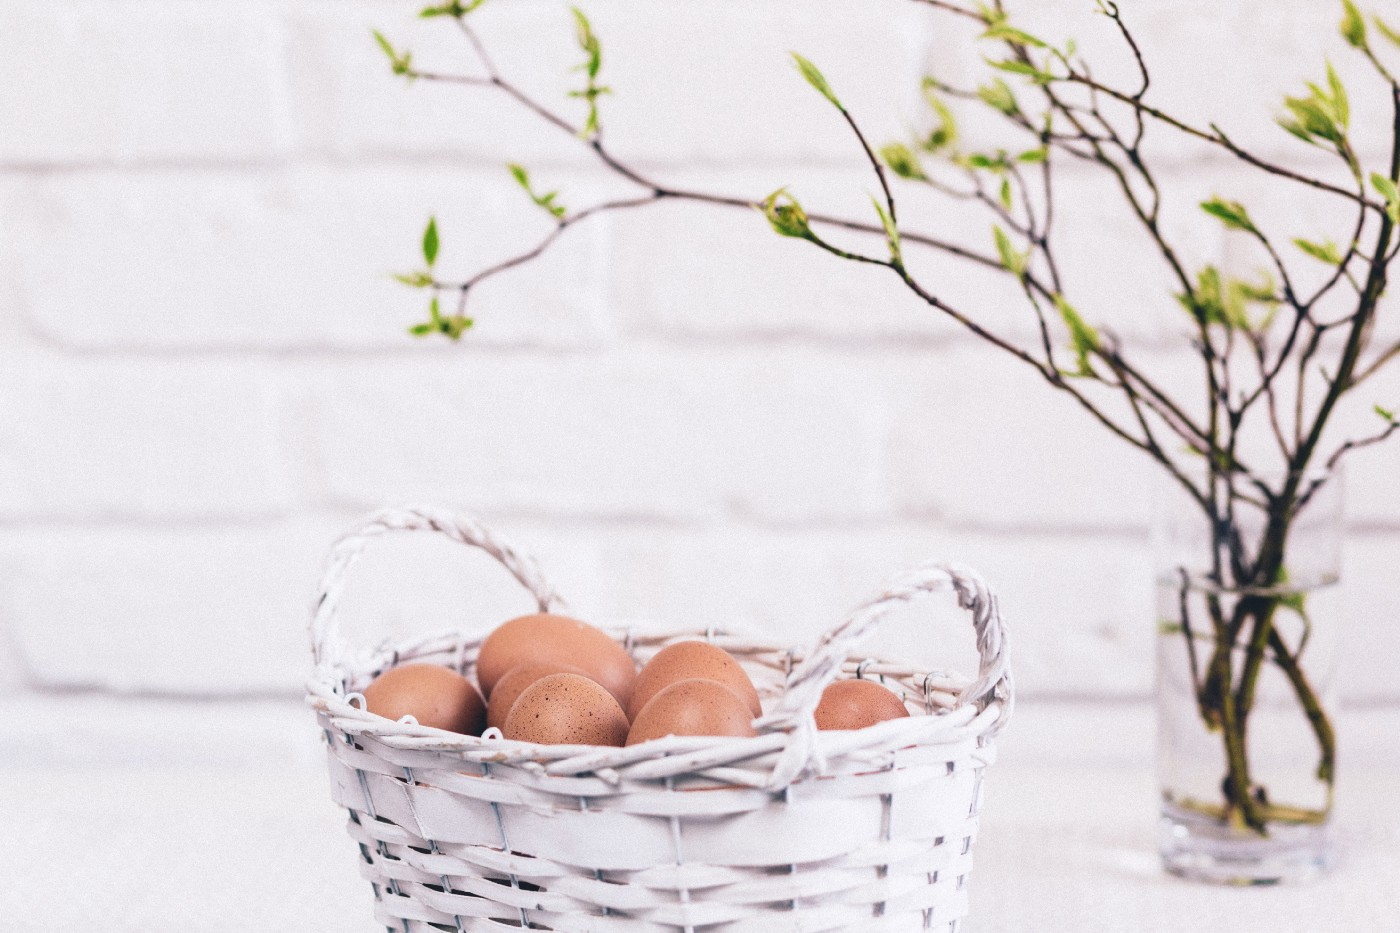 a basket of eggs beside a vase of sprouting branches